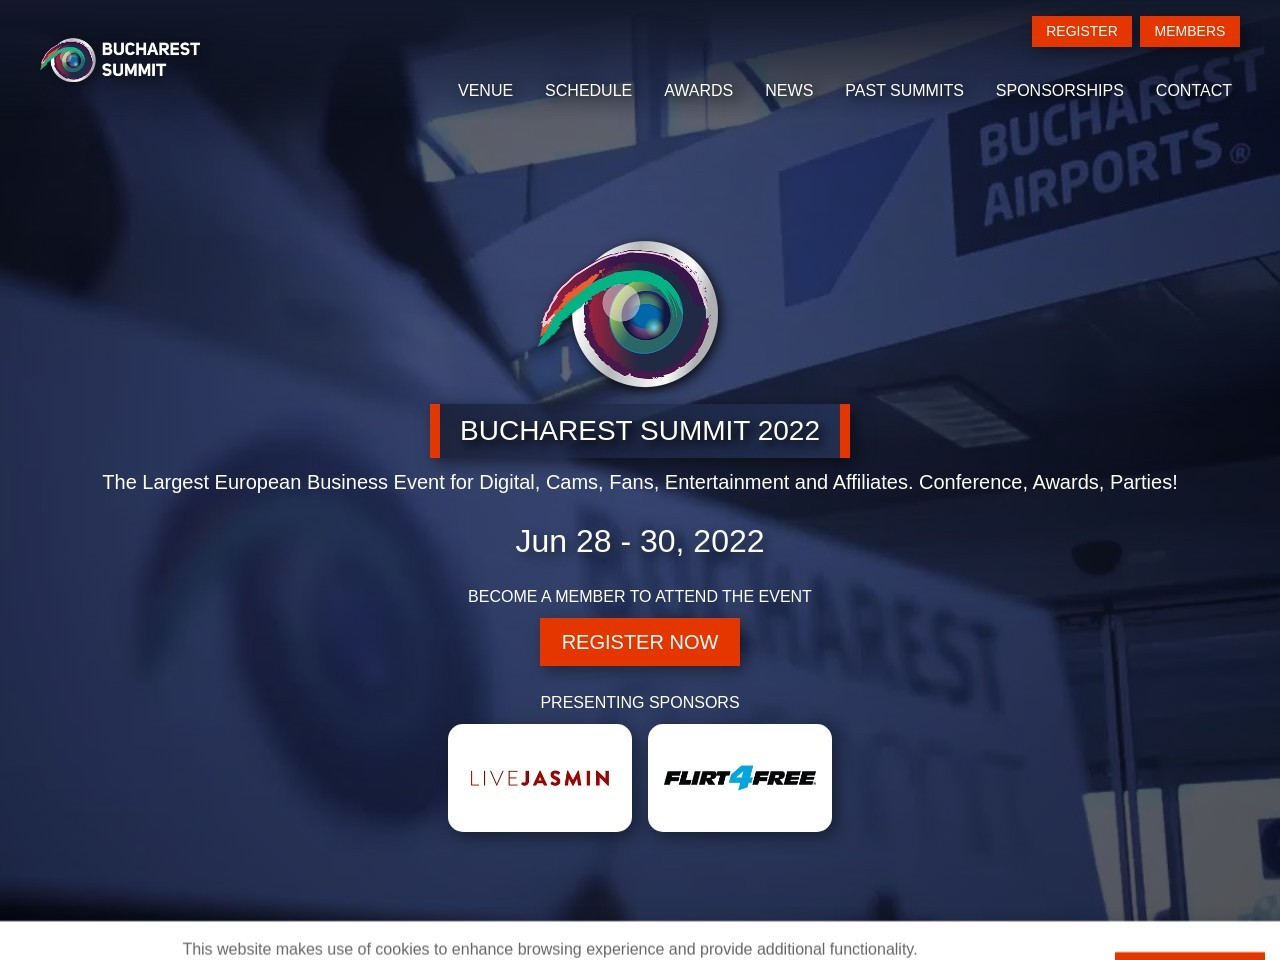 Bucharest Summit 2020 will happen